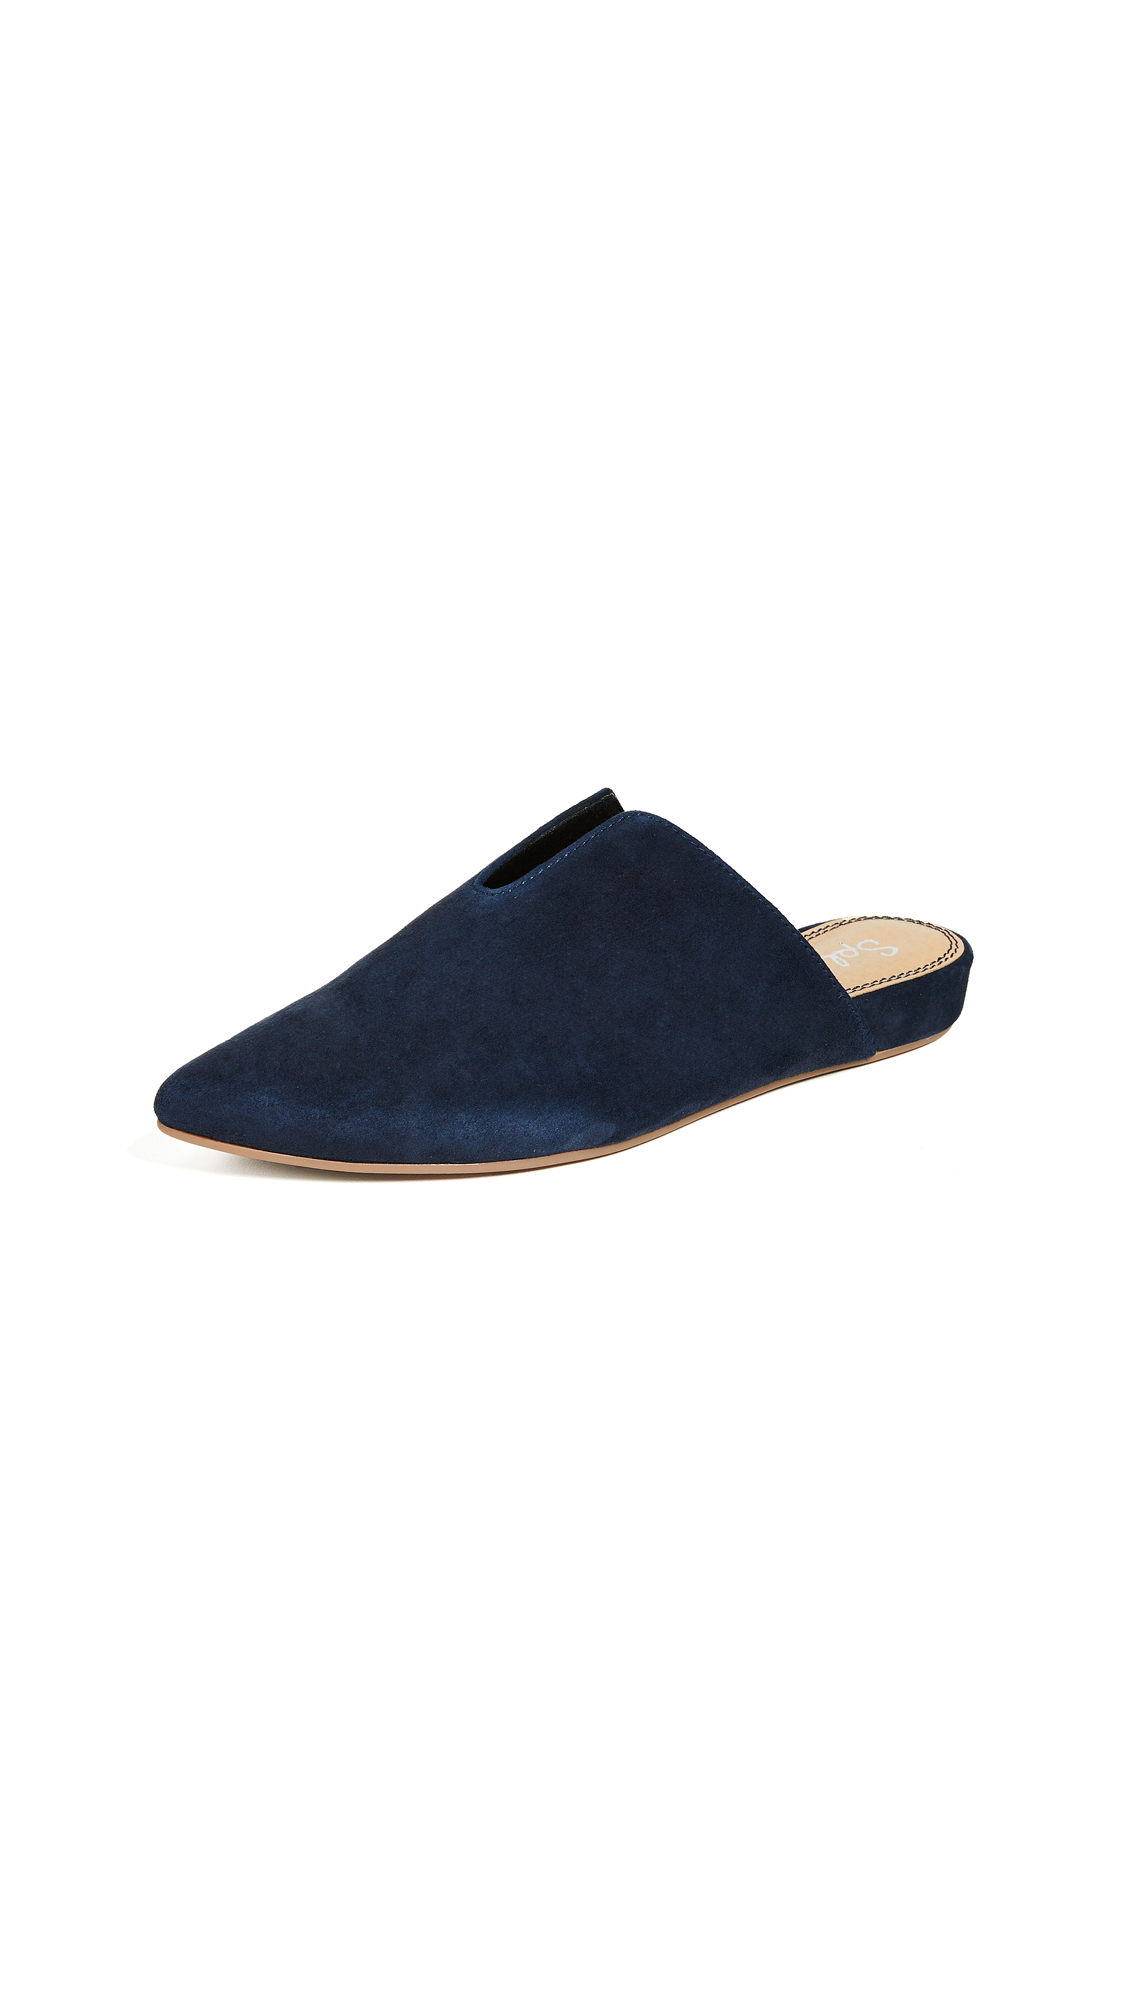 Splendid Nieves Point Toe Mules - Navy